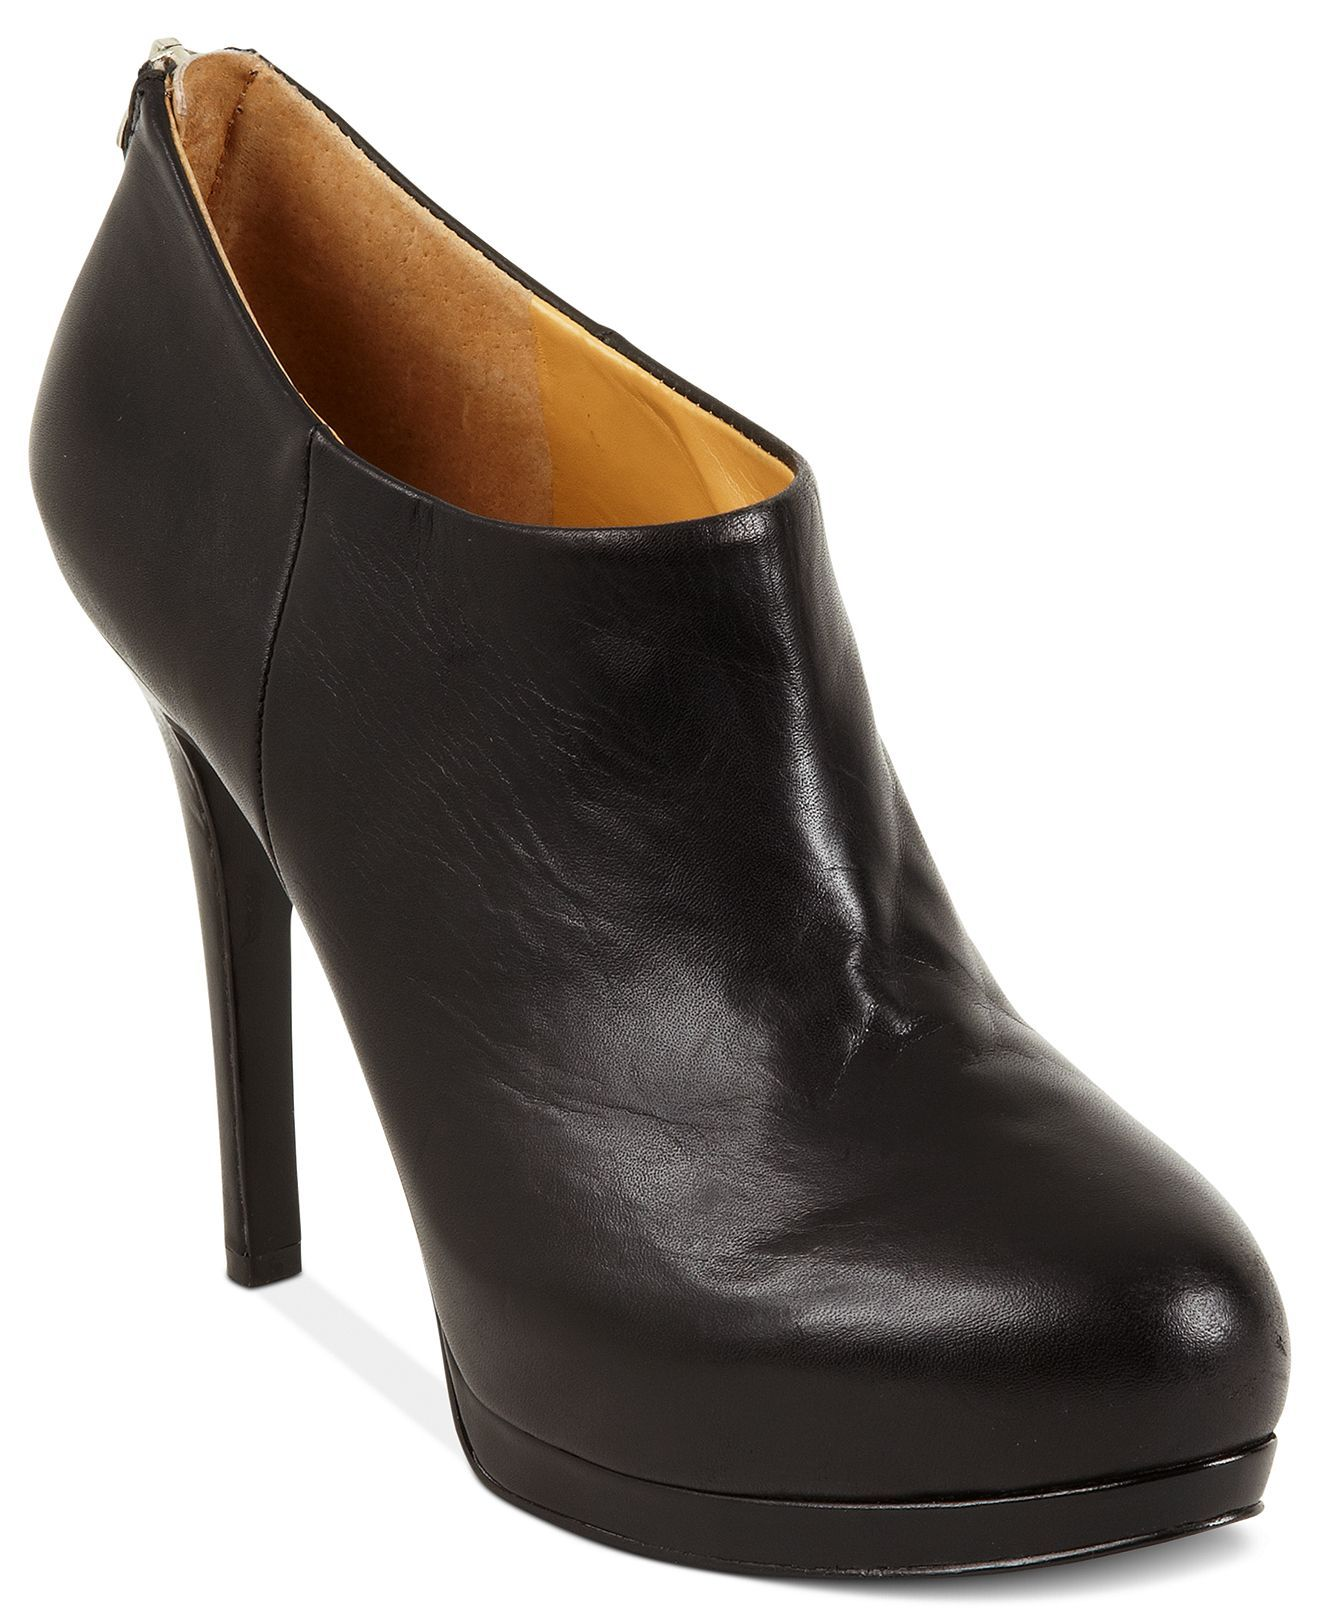 Nine West Haywire Platform Booties - Boots - Shoes - Macy's. Women's  BootsBuy ...